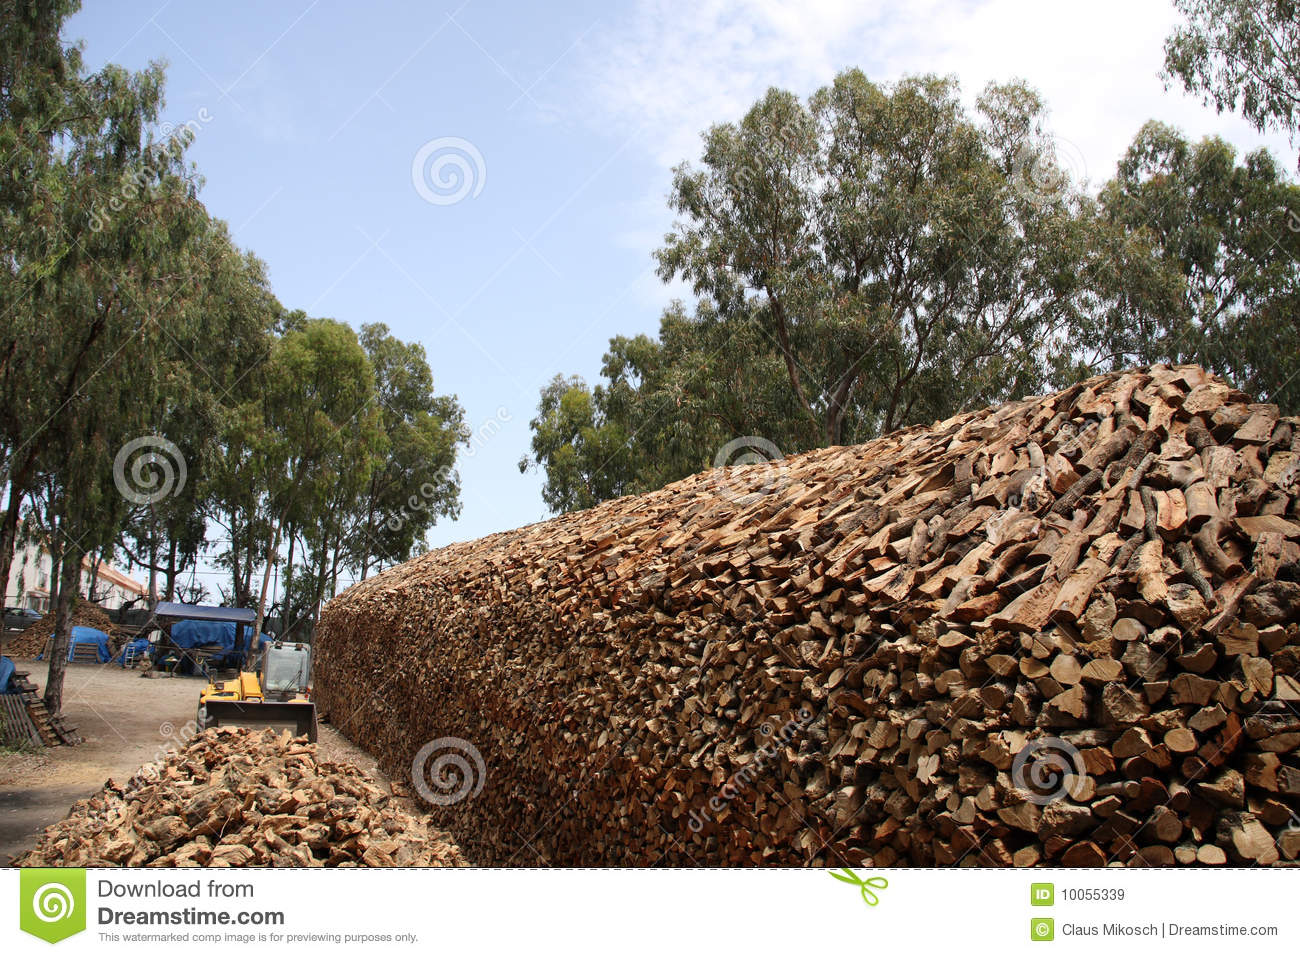 Firewood business stock image. Image of nature, tree - 10055339